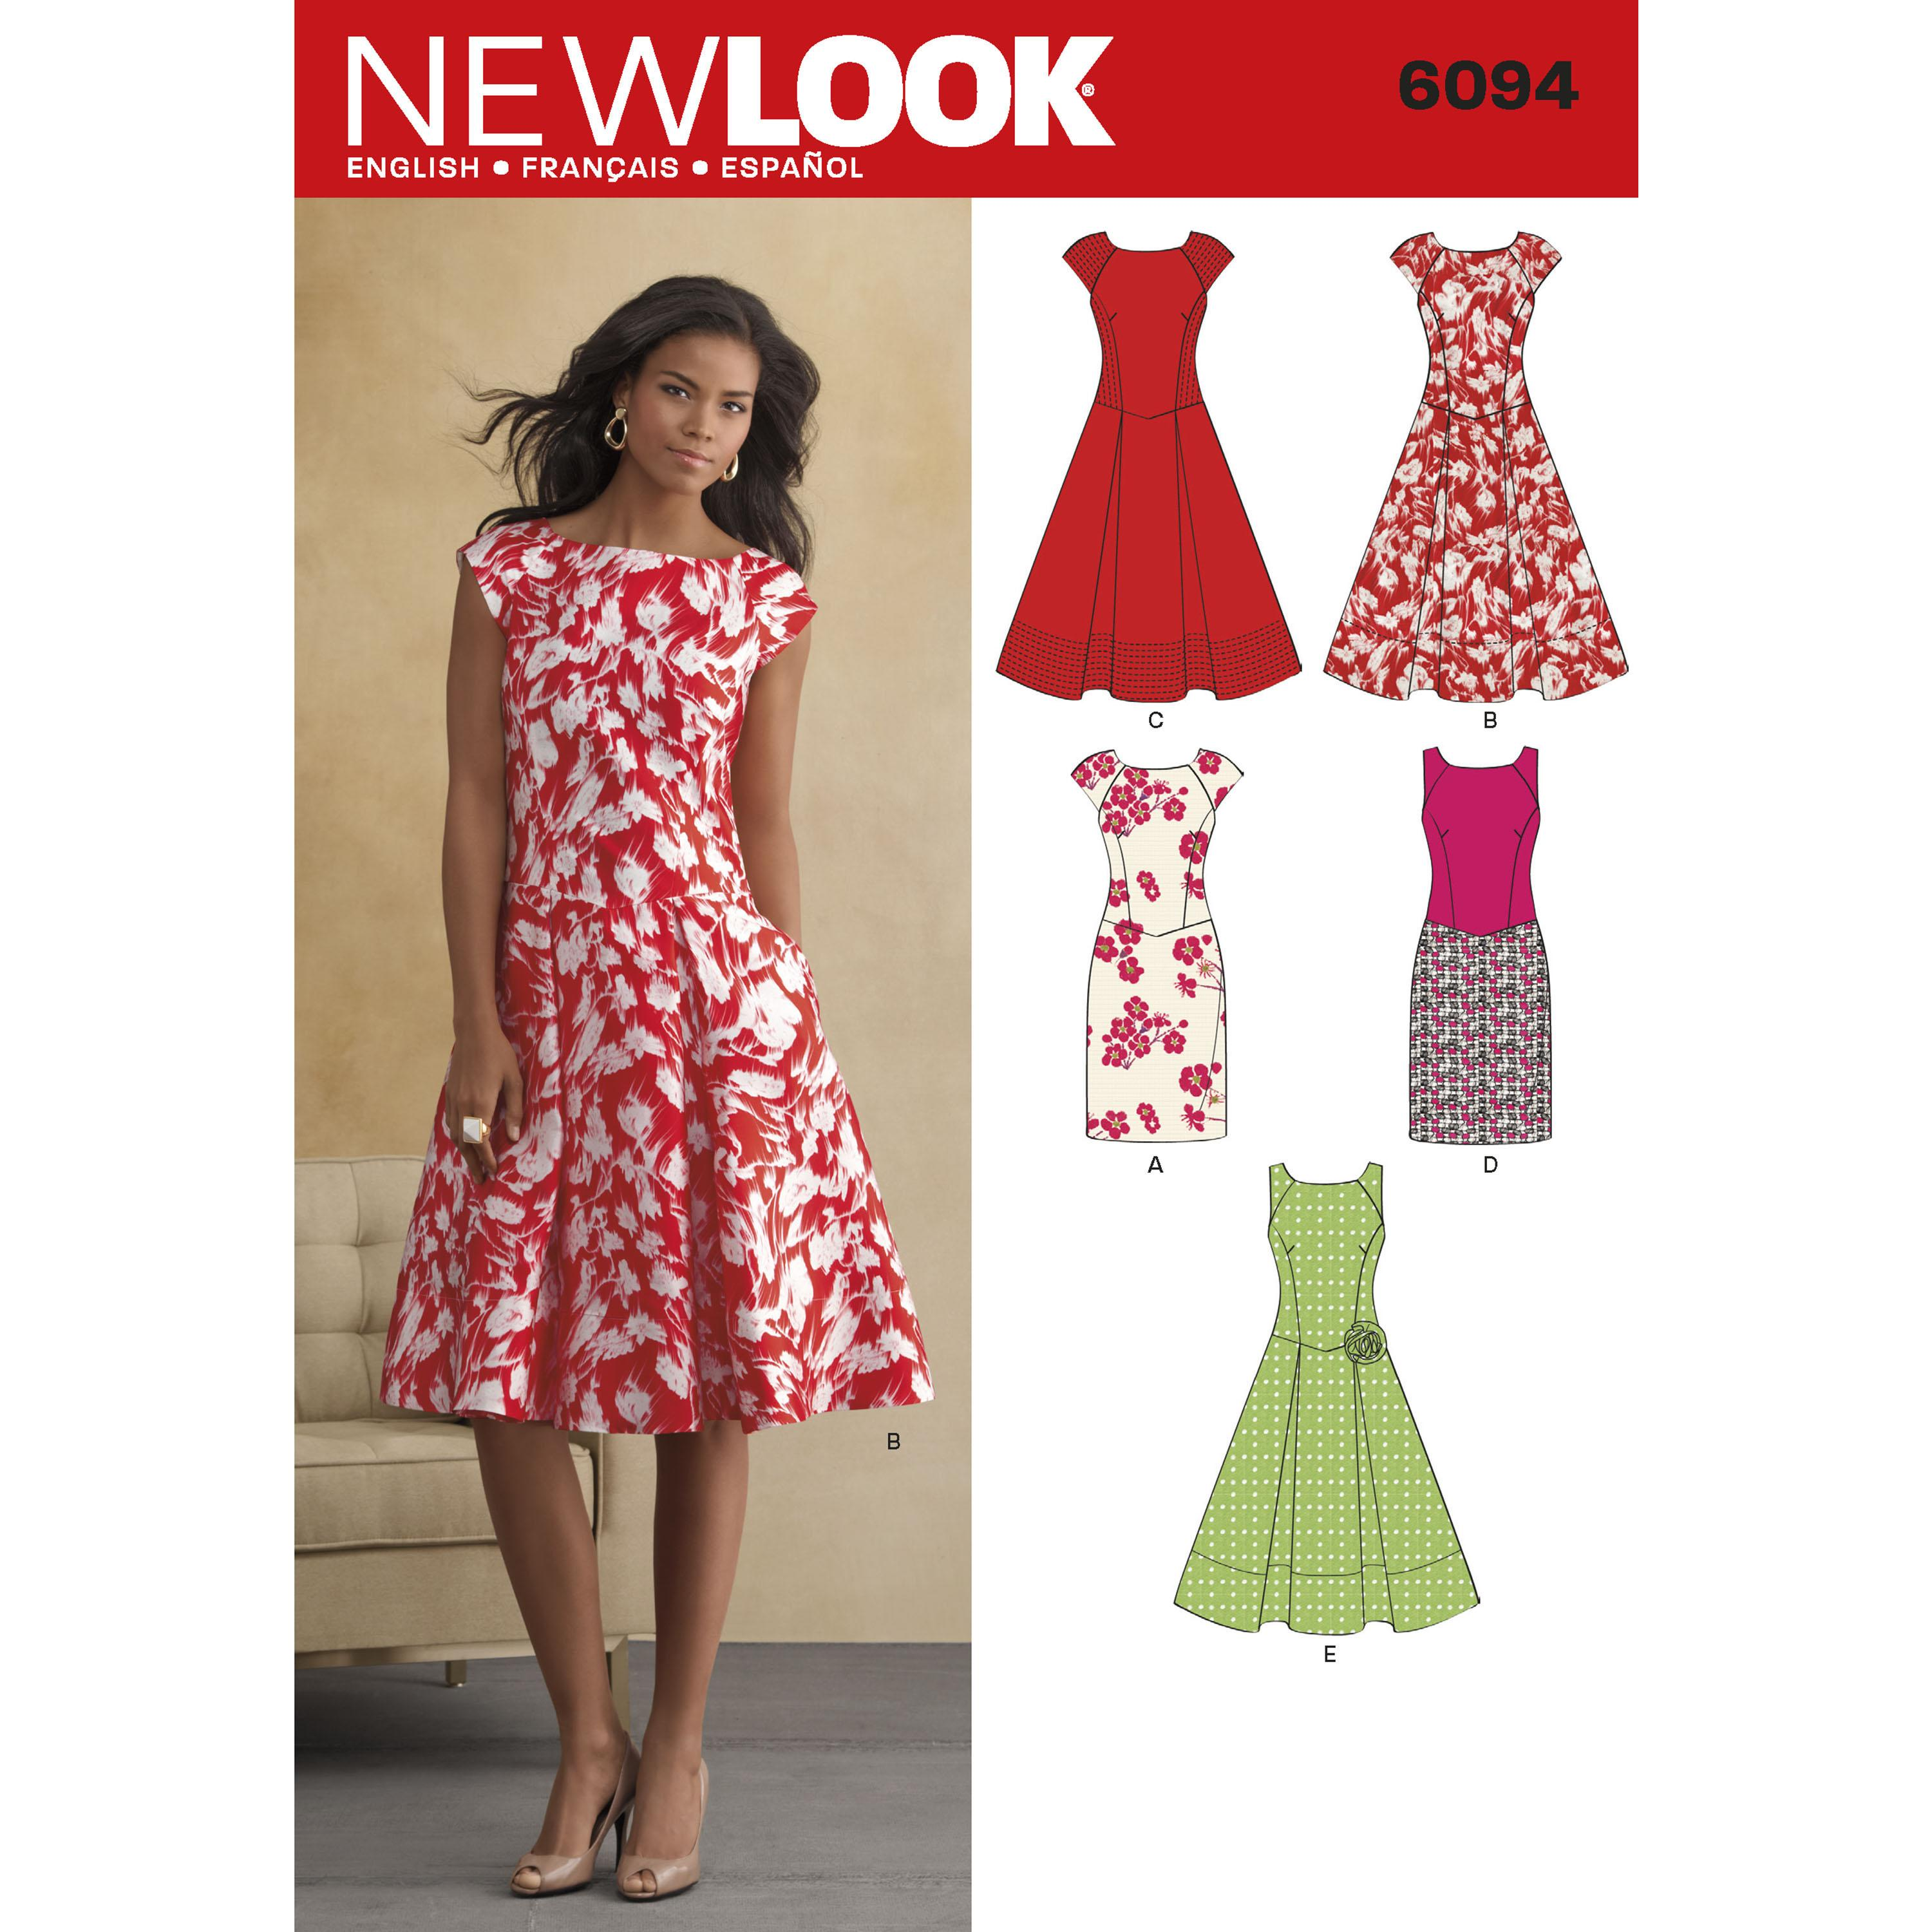 NewLook N6094 Misses' Dresses